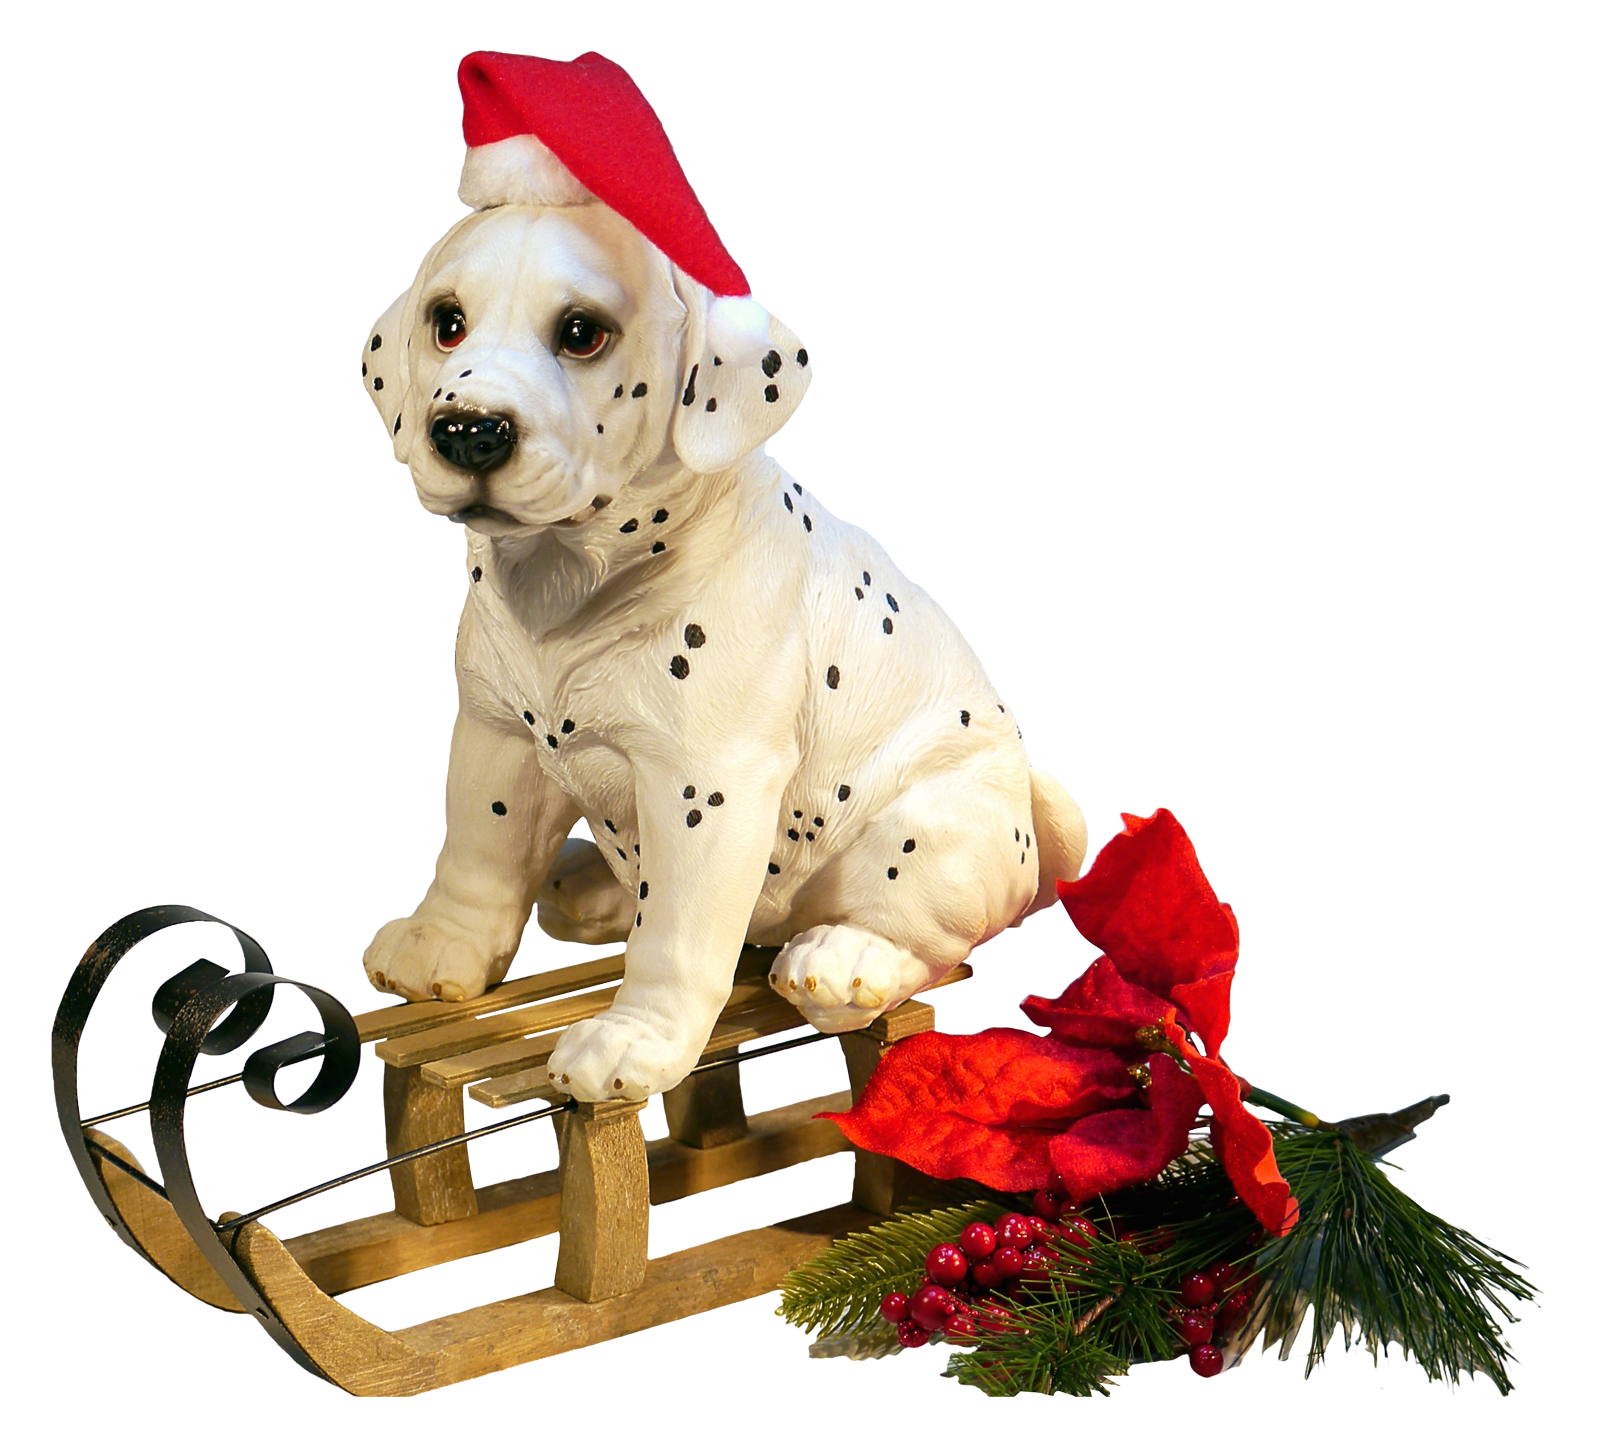 Christmas dog clipart free svg download Christmas Dog PNG Image - PurePNG | Free transparent CC0 PNG Image ... svg download